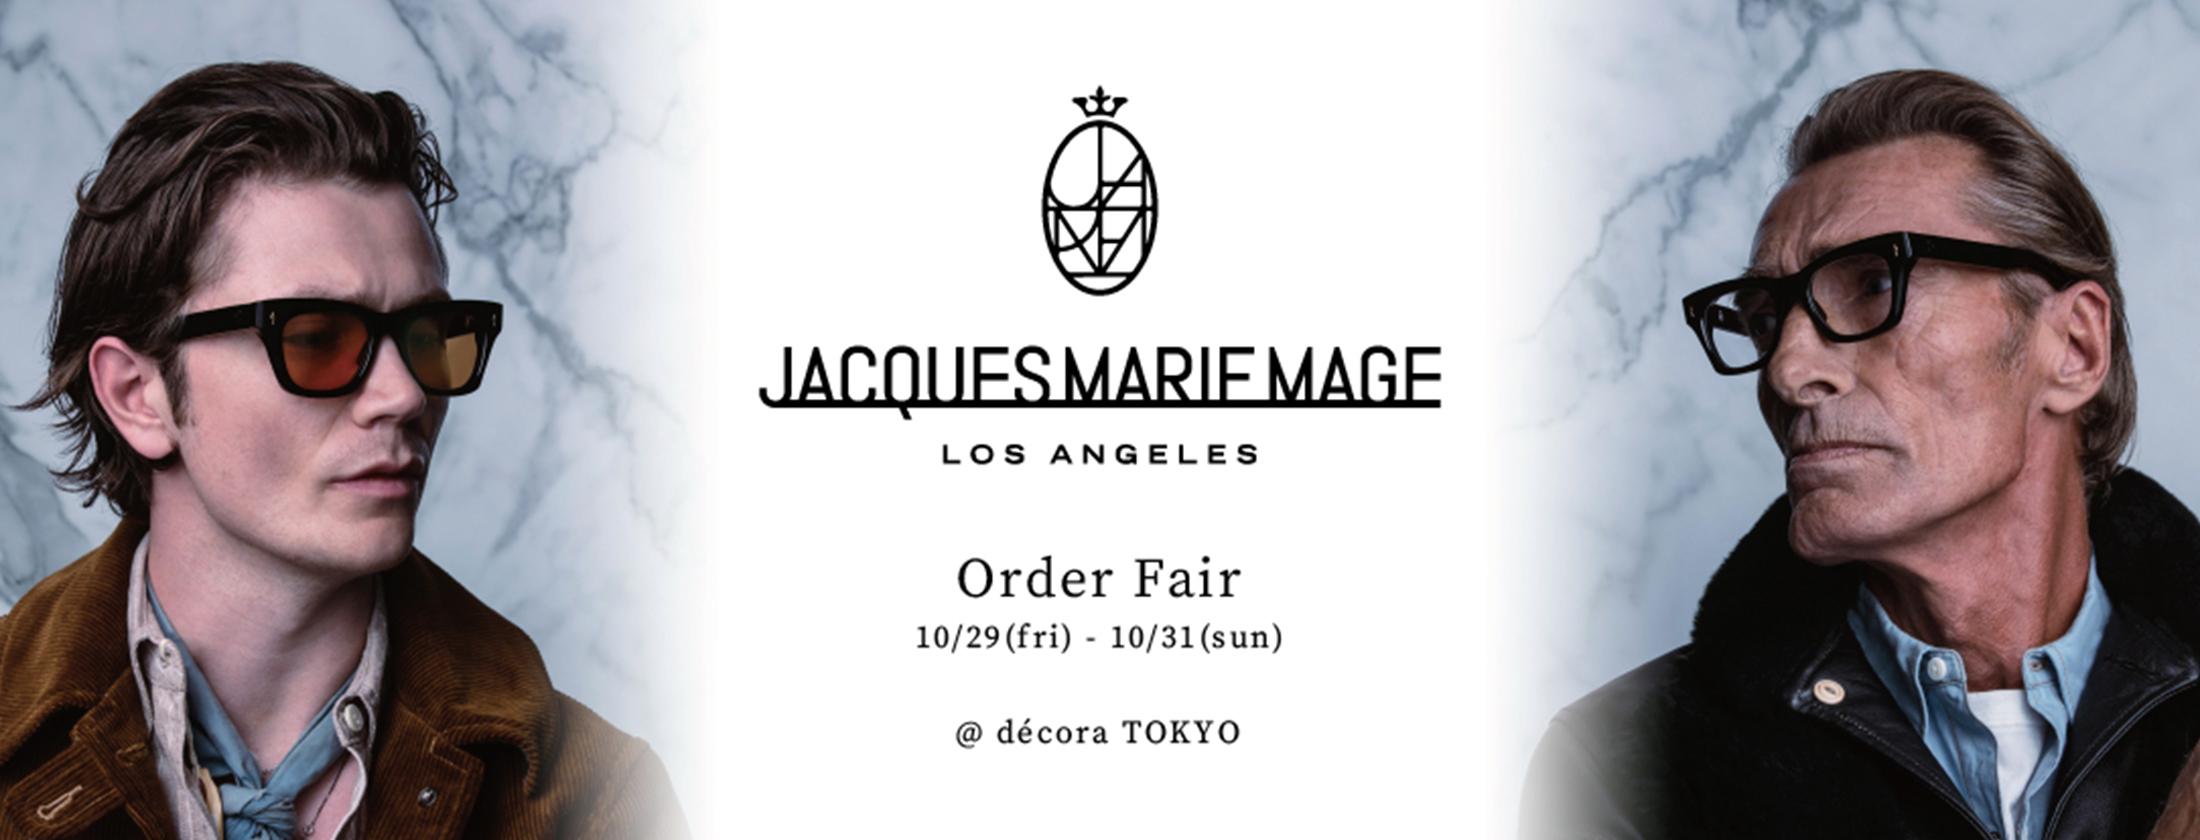 JACQUES MARIE MAGE Order Fair